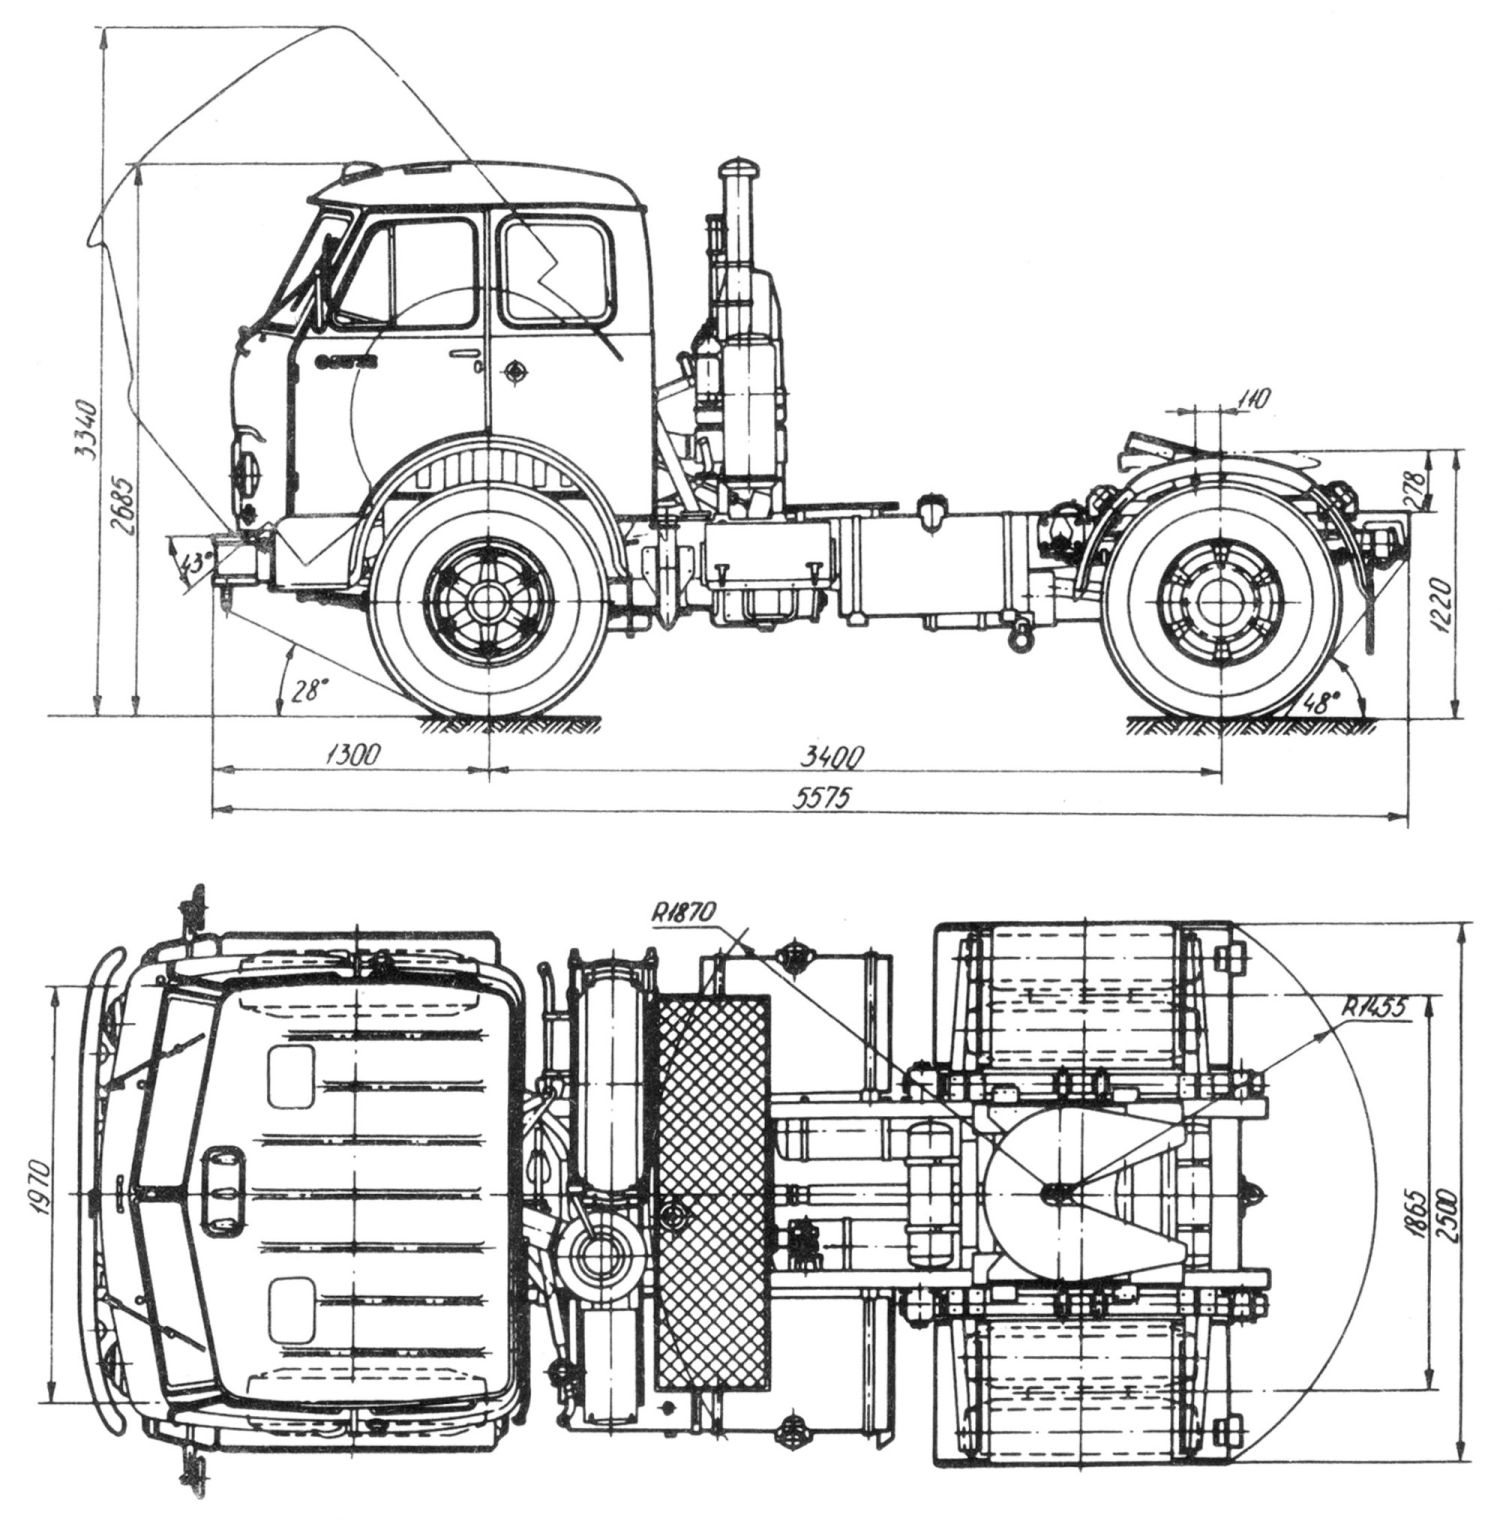 MAZ 504V blueprint